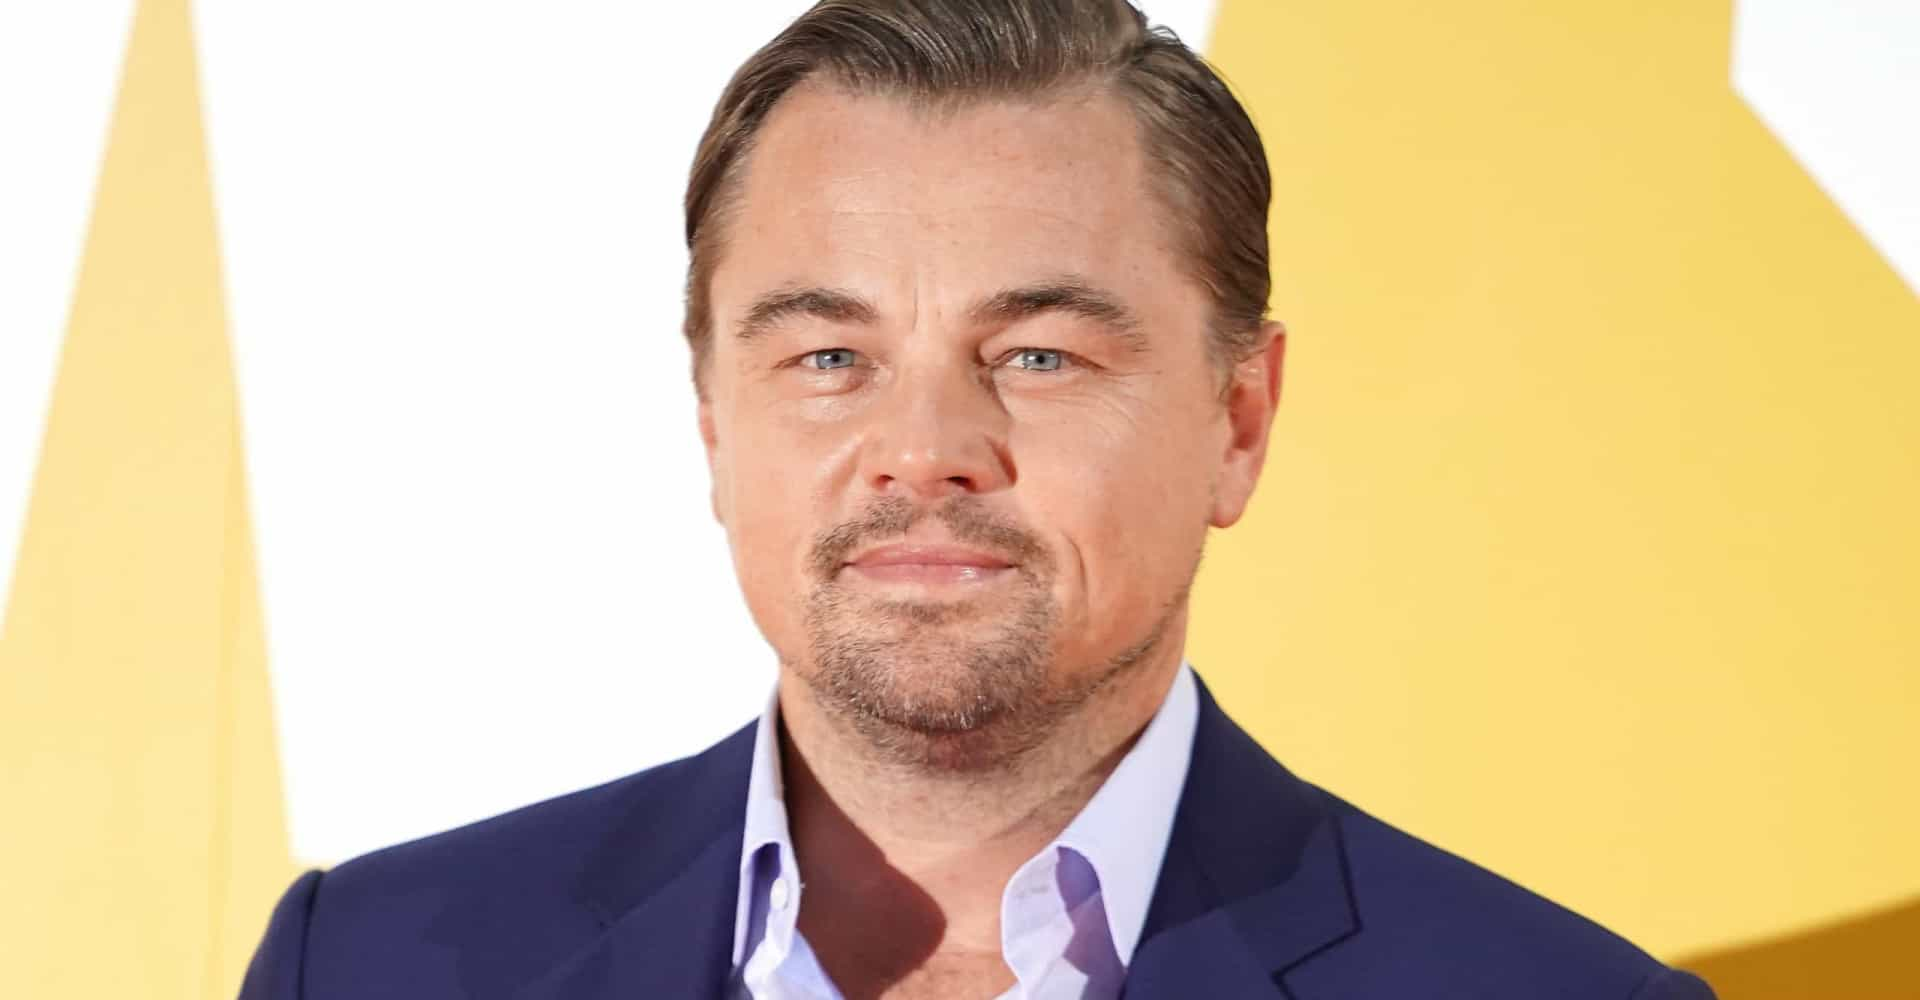 Charity and more: This is how Leonardo DiCaprio spends his millions